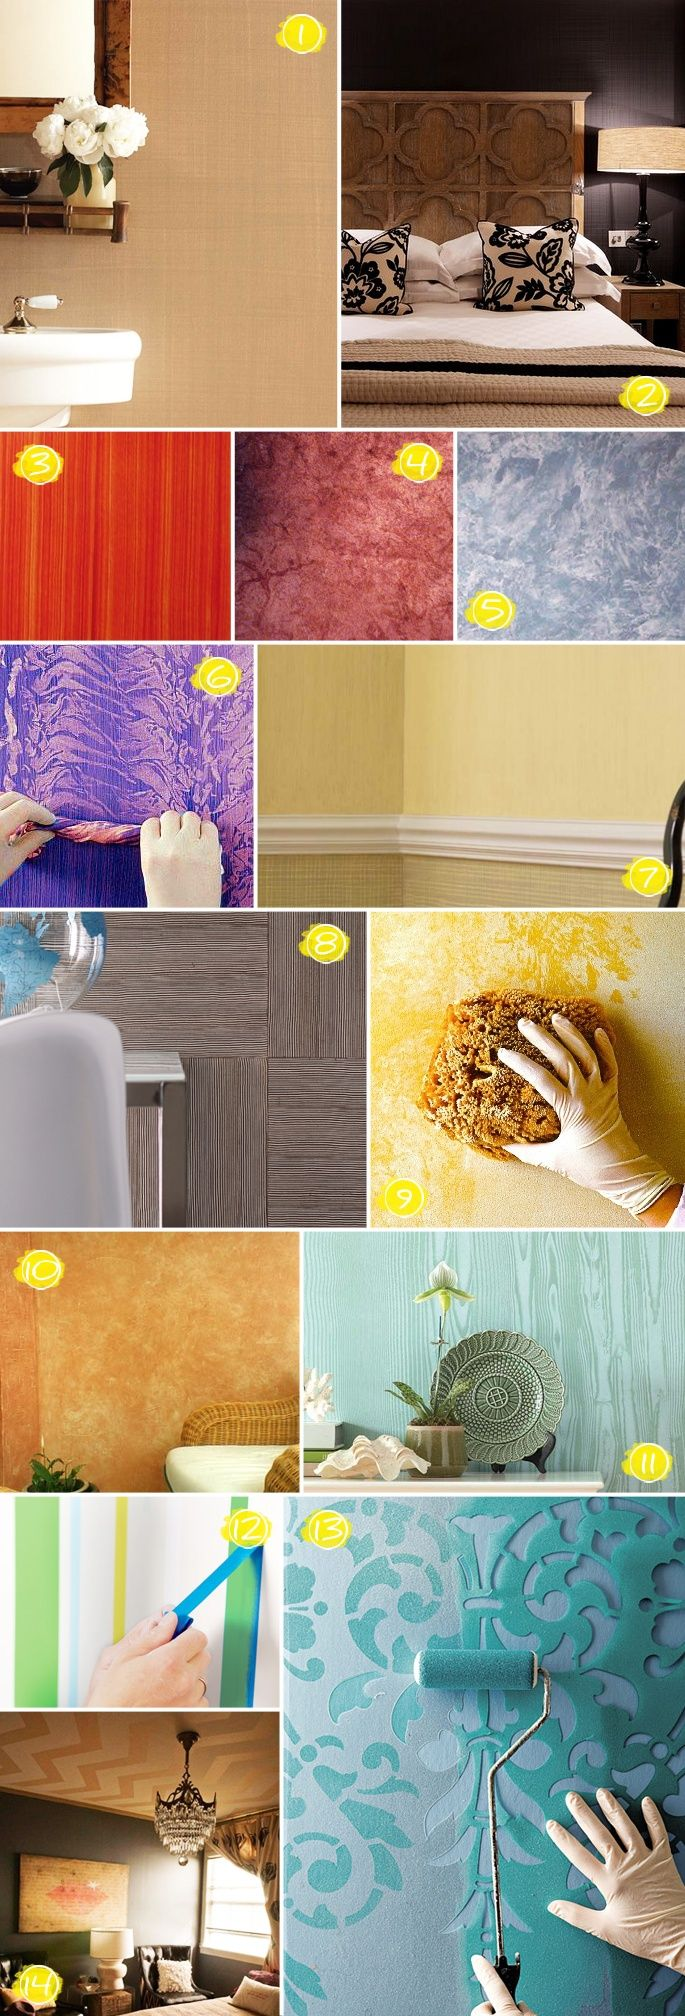 @Leann Guthrie for mom.... go to bottom and click Martha Stewart directions. Textured painting ideas - never have a plain wall again!